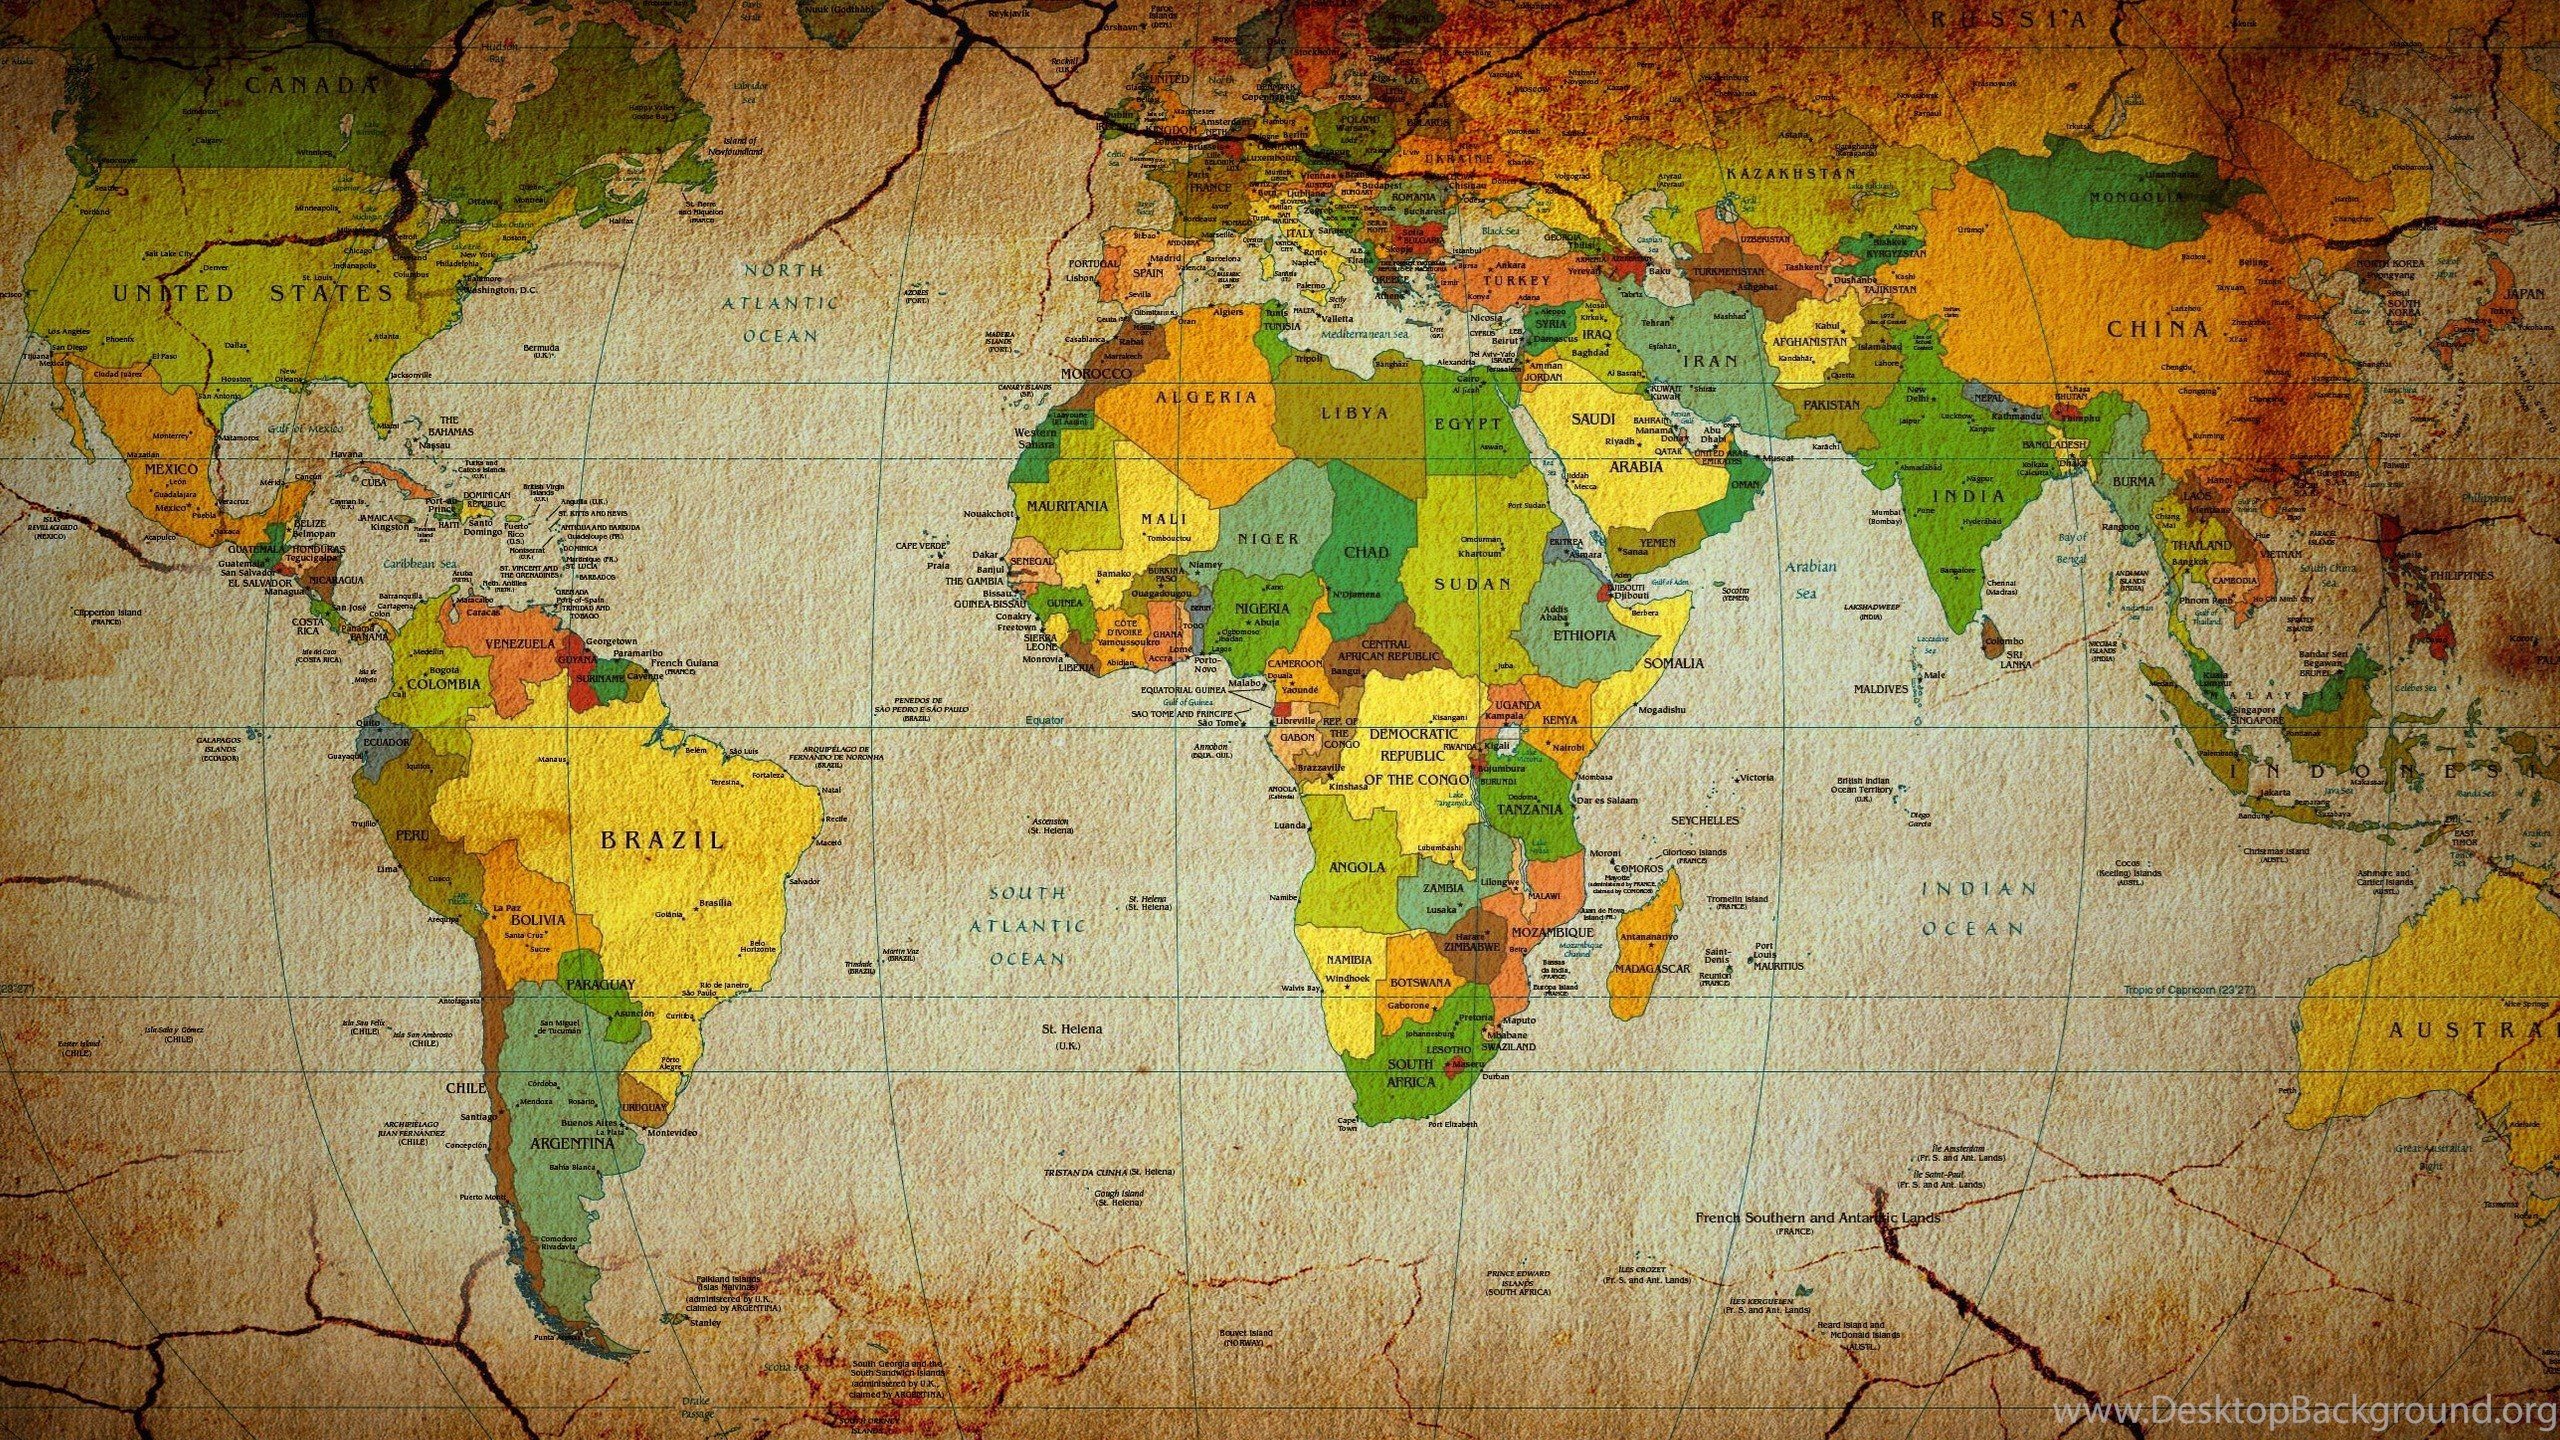 High Resolution World Map High Resolution Wallpapers Full Size - World map full size download